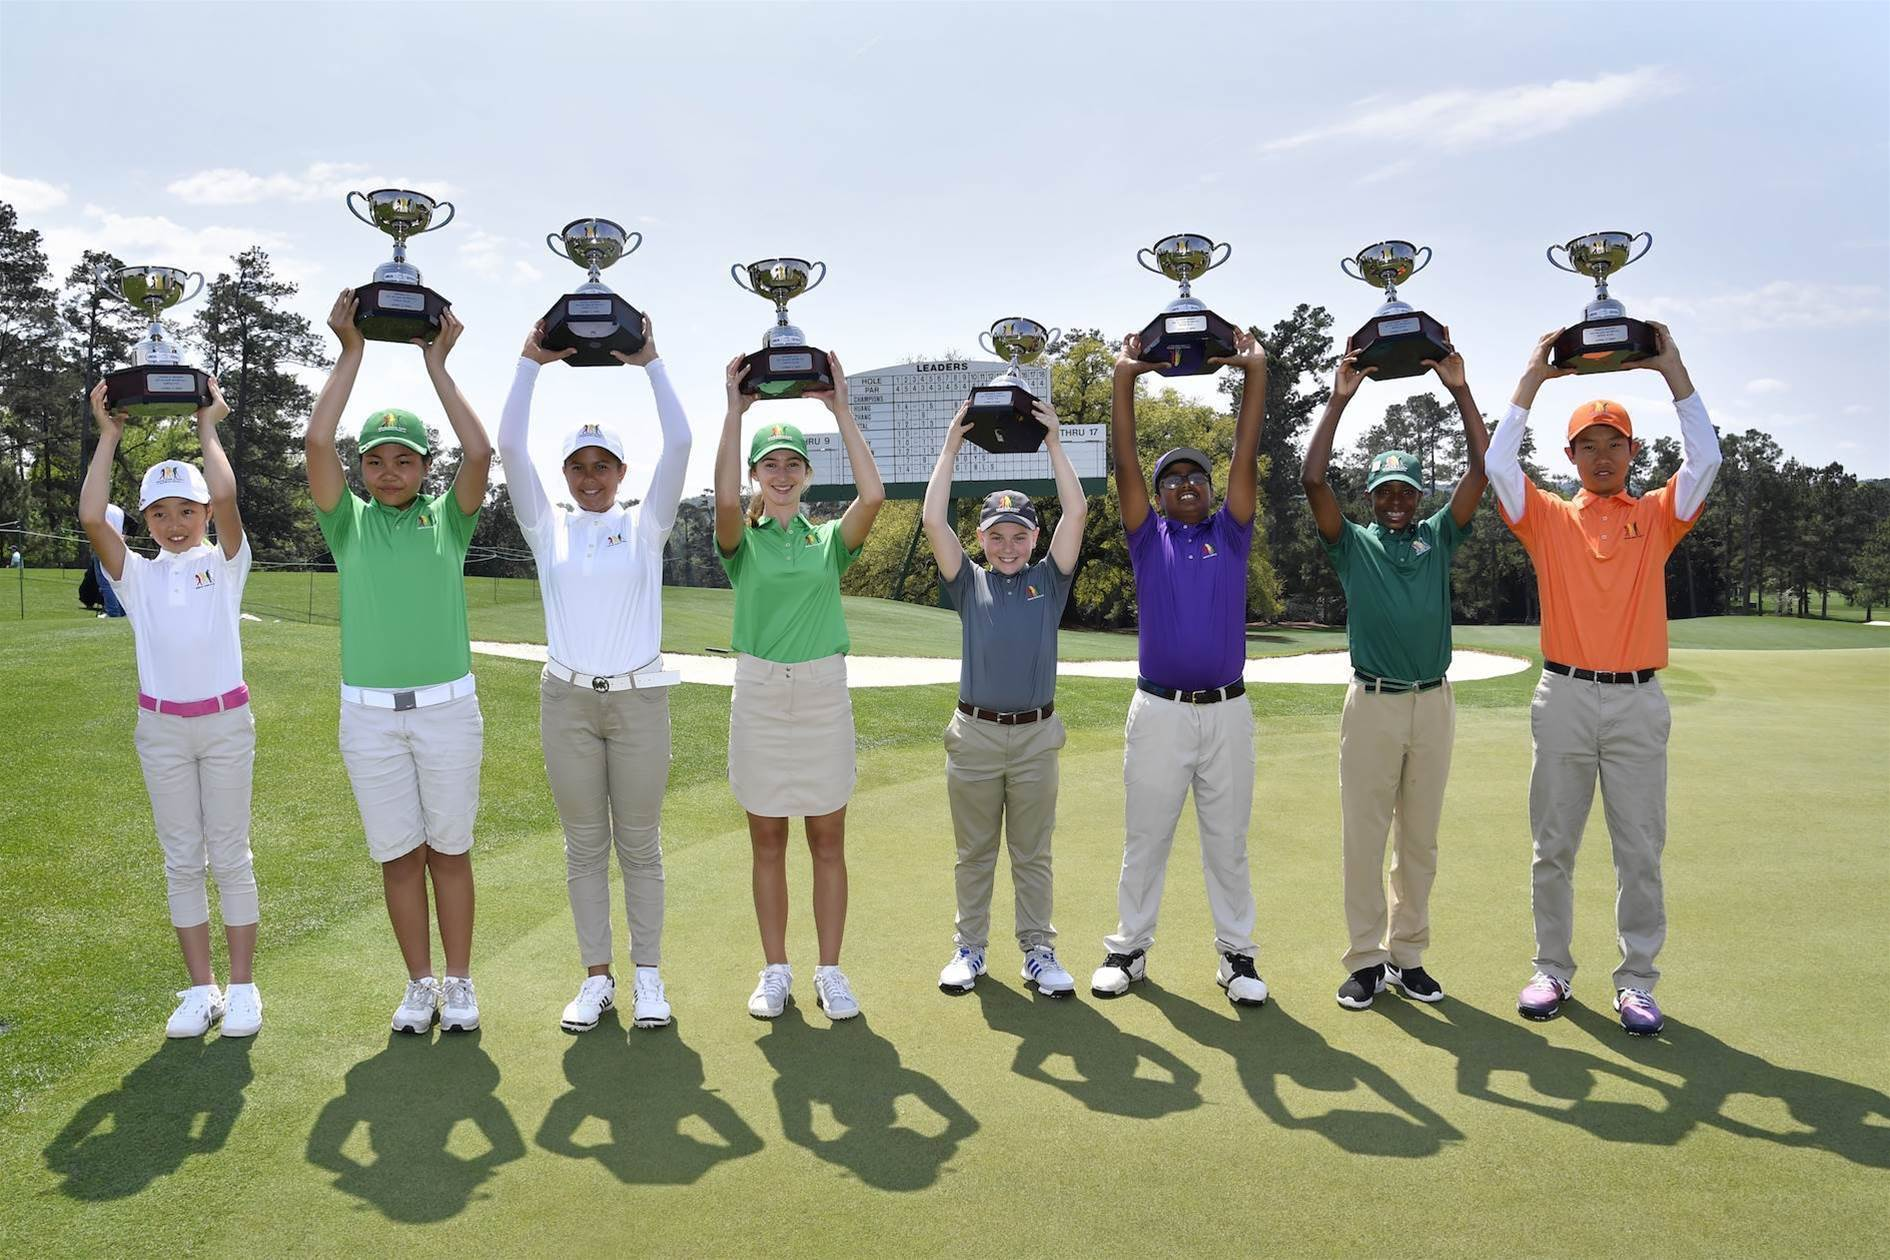 2019 Drive, Chip and Putt champions crowned at Augusta